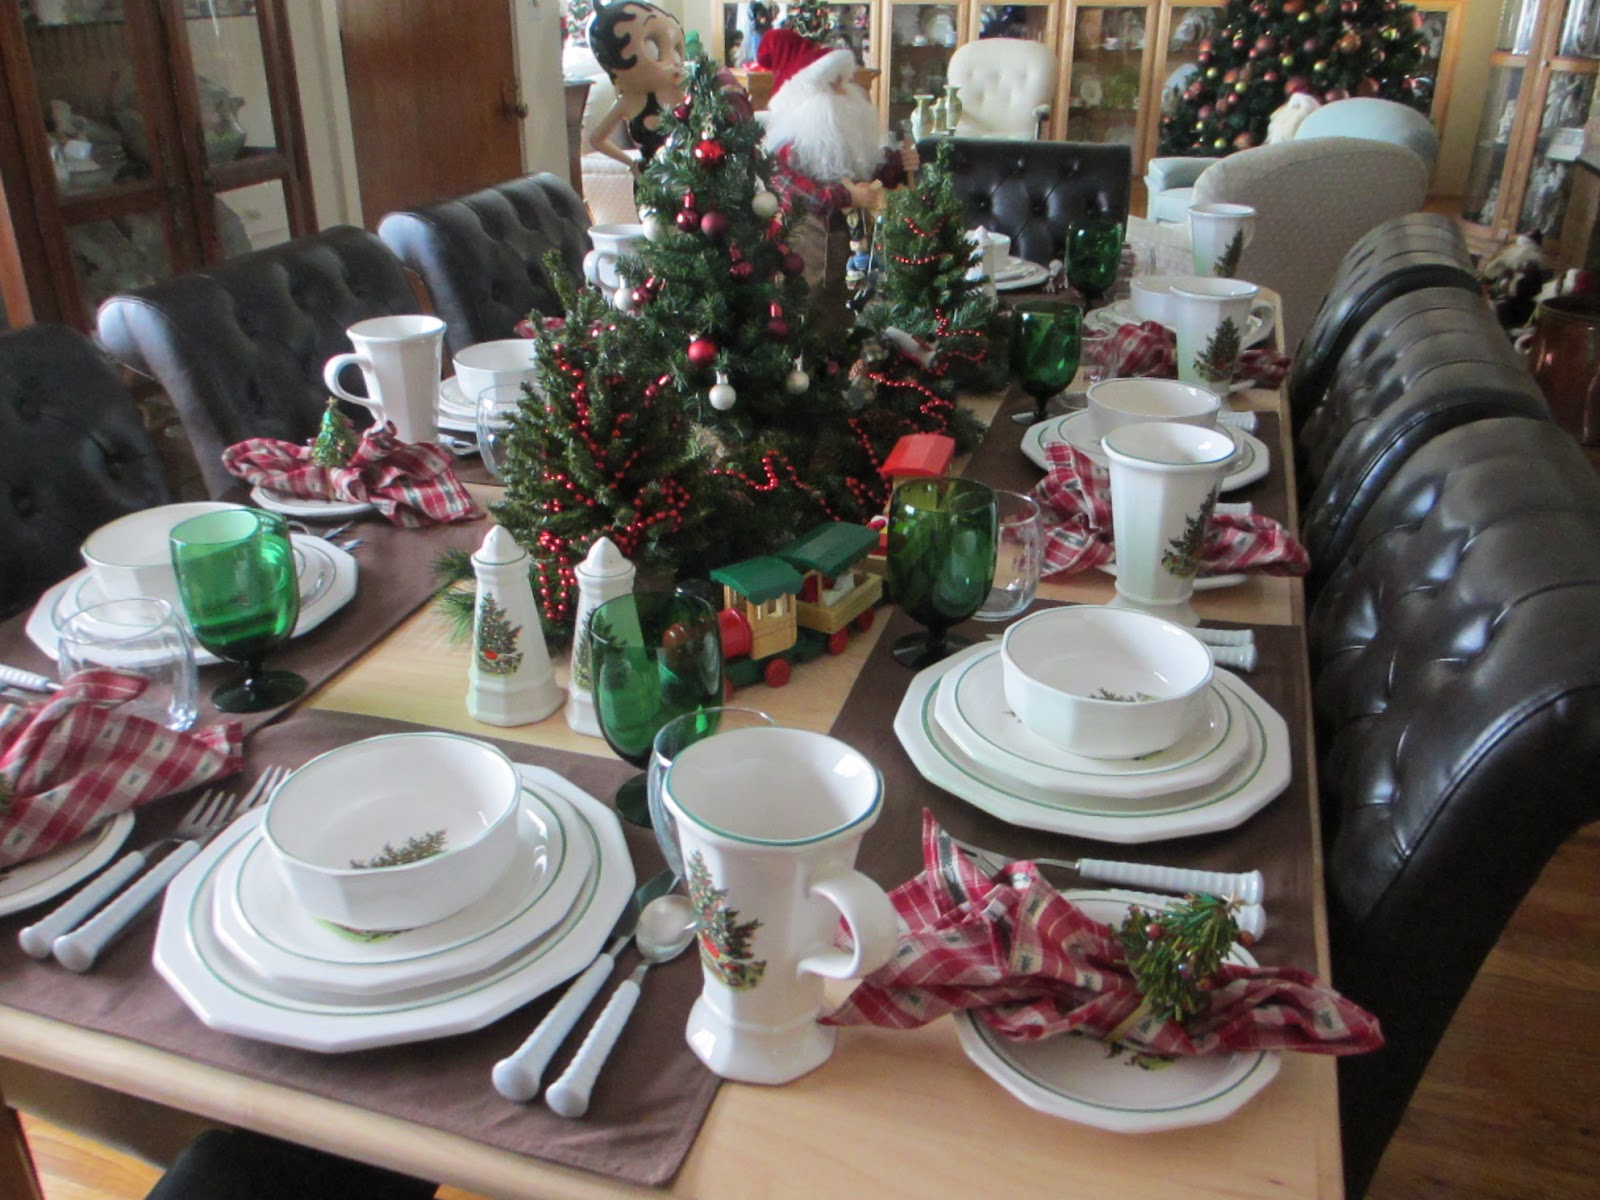 Christmas Breakfast Tablescape with Pfaltzgraff & The Welcomed Guest: Christmas Breakfast Tablescape with Pfaltzgraff